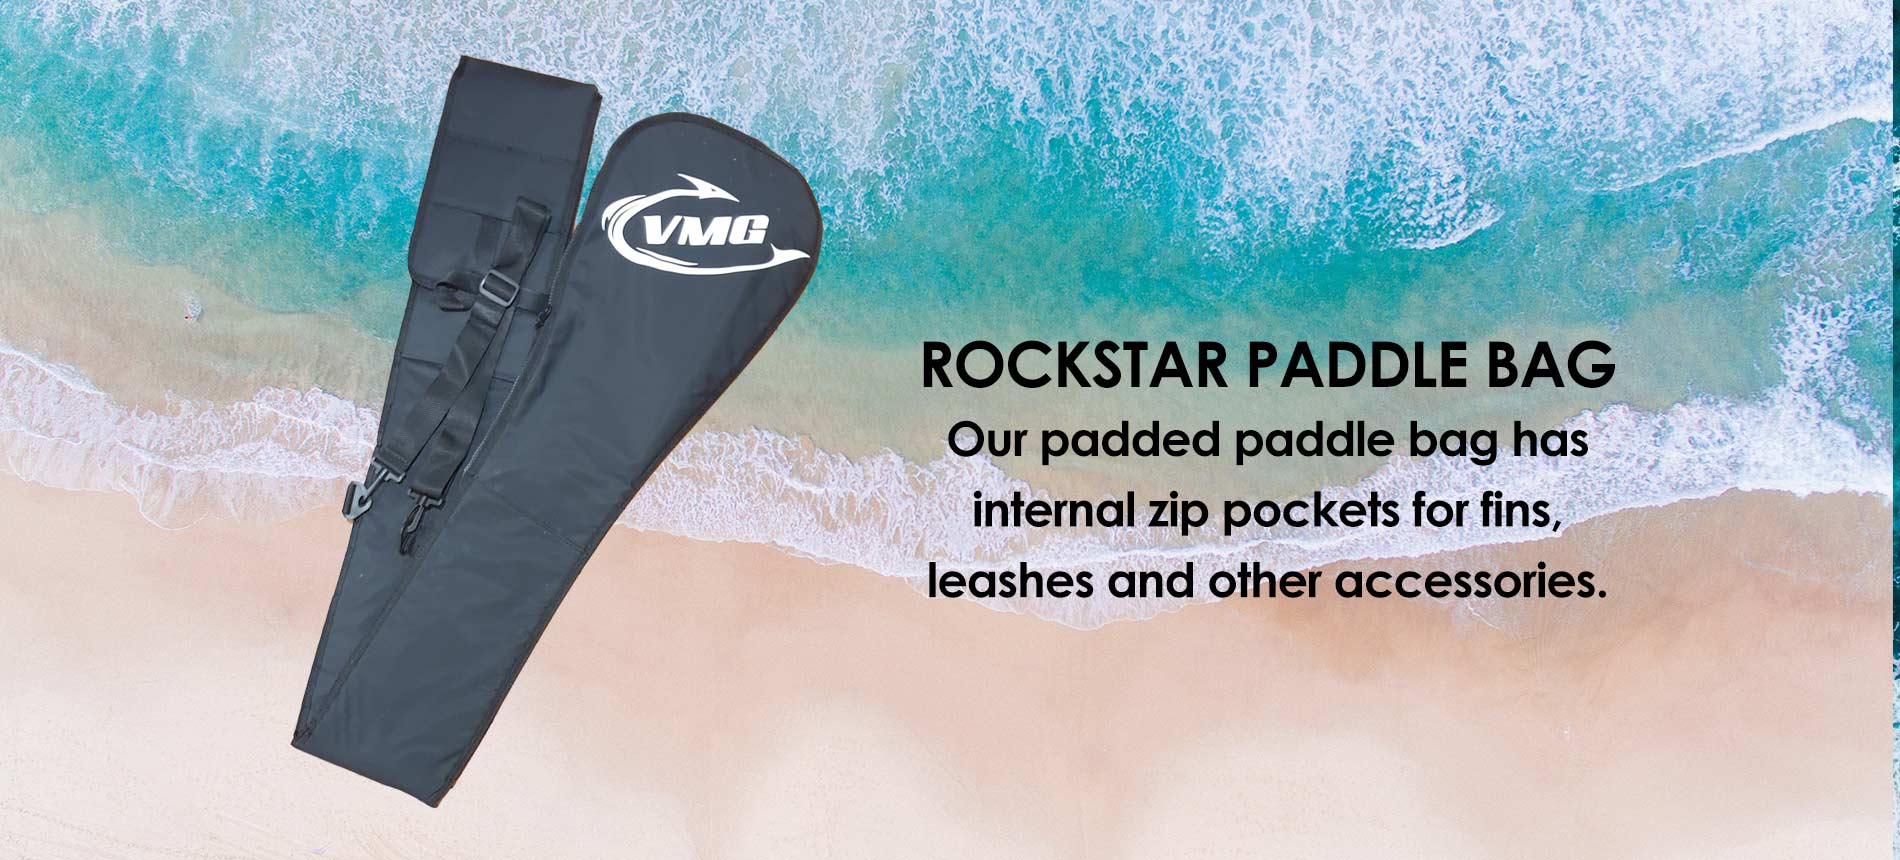 VMG Rockstar Padded Paddle Bag